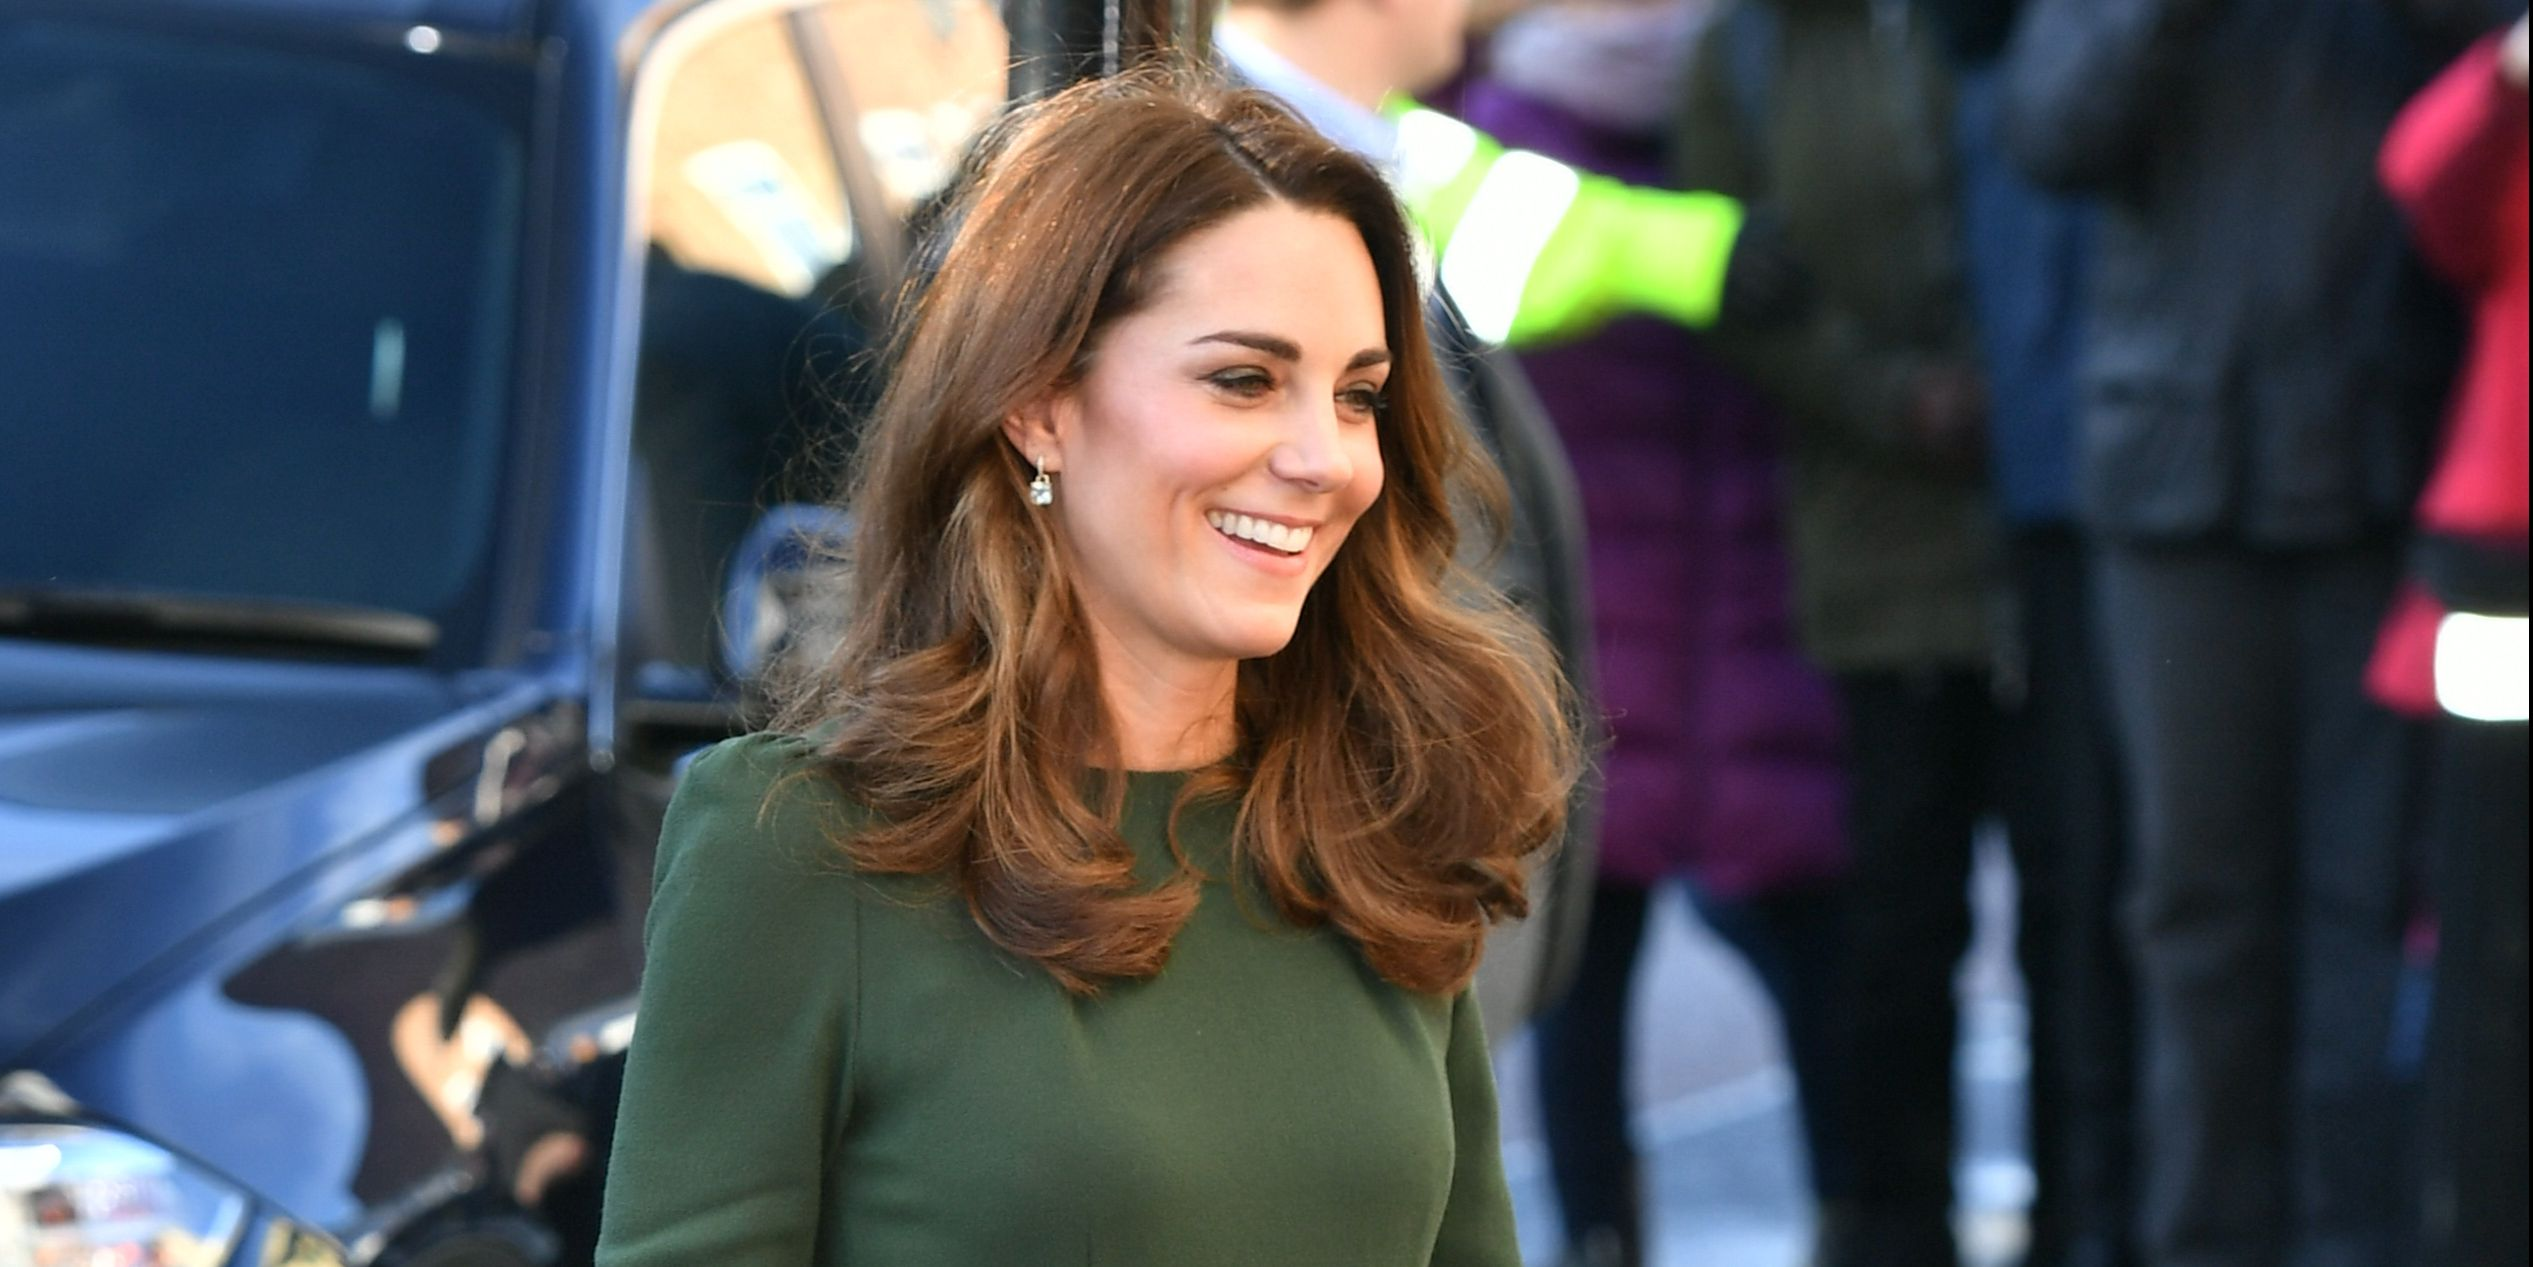 Kate Middleton Steps Out in a Belted Green Beulah Dress to Visit Family Action Lewisham